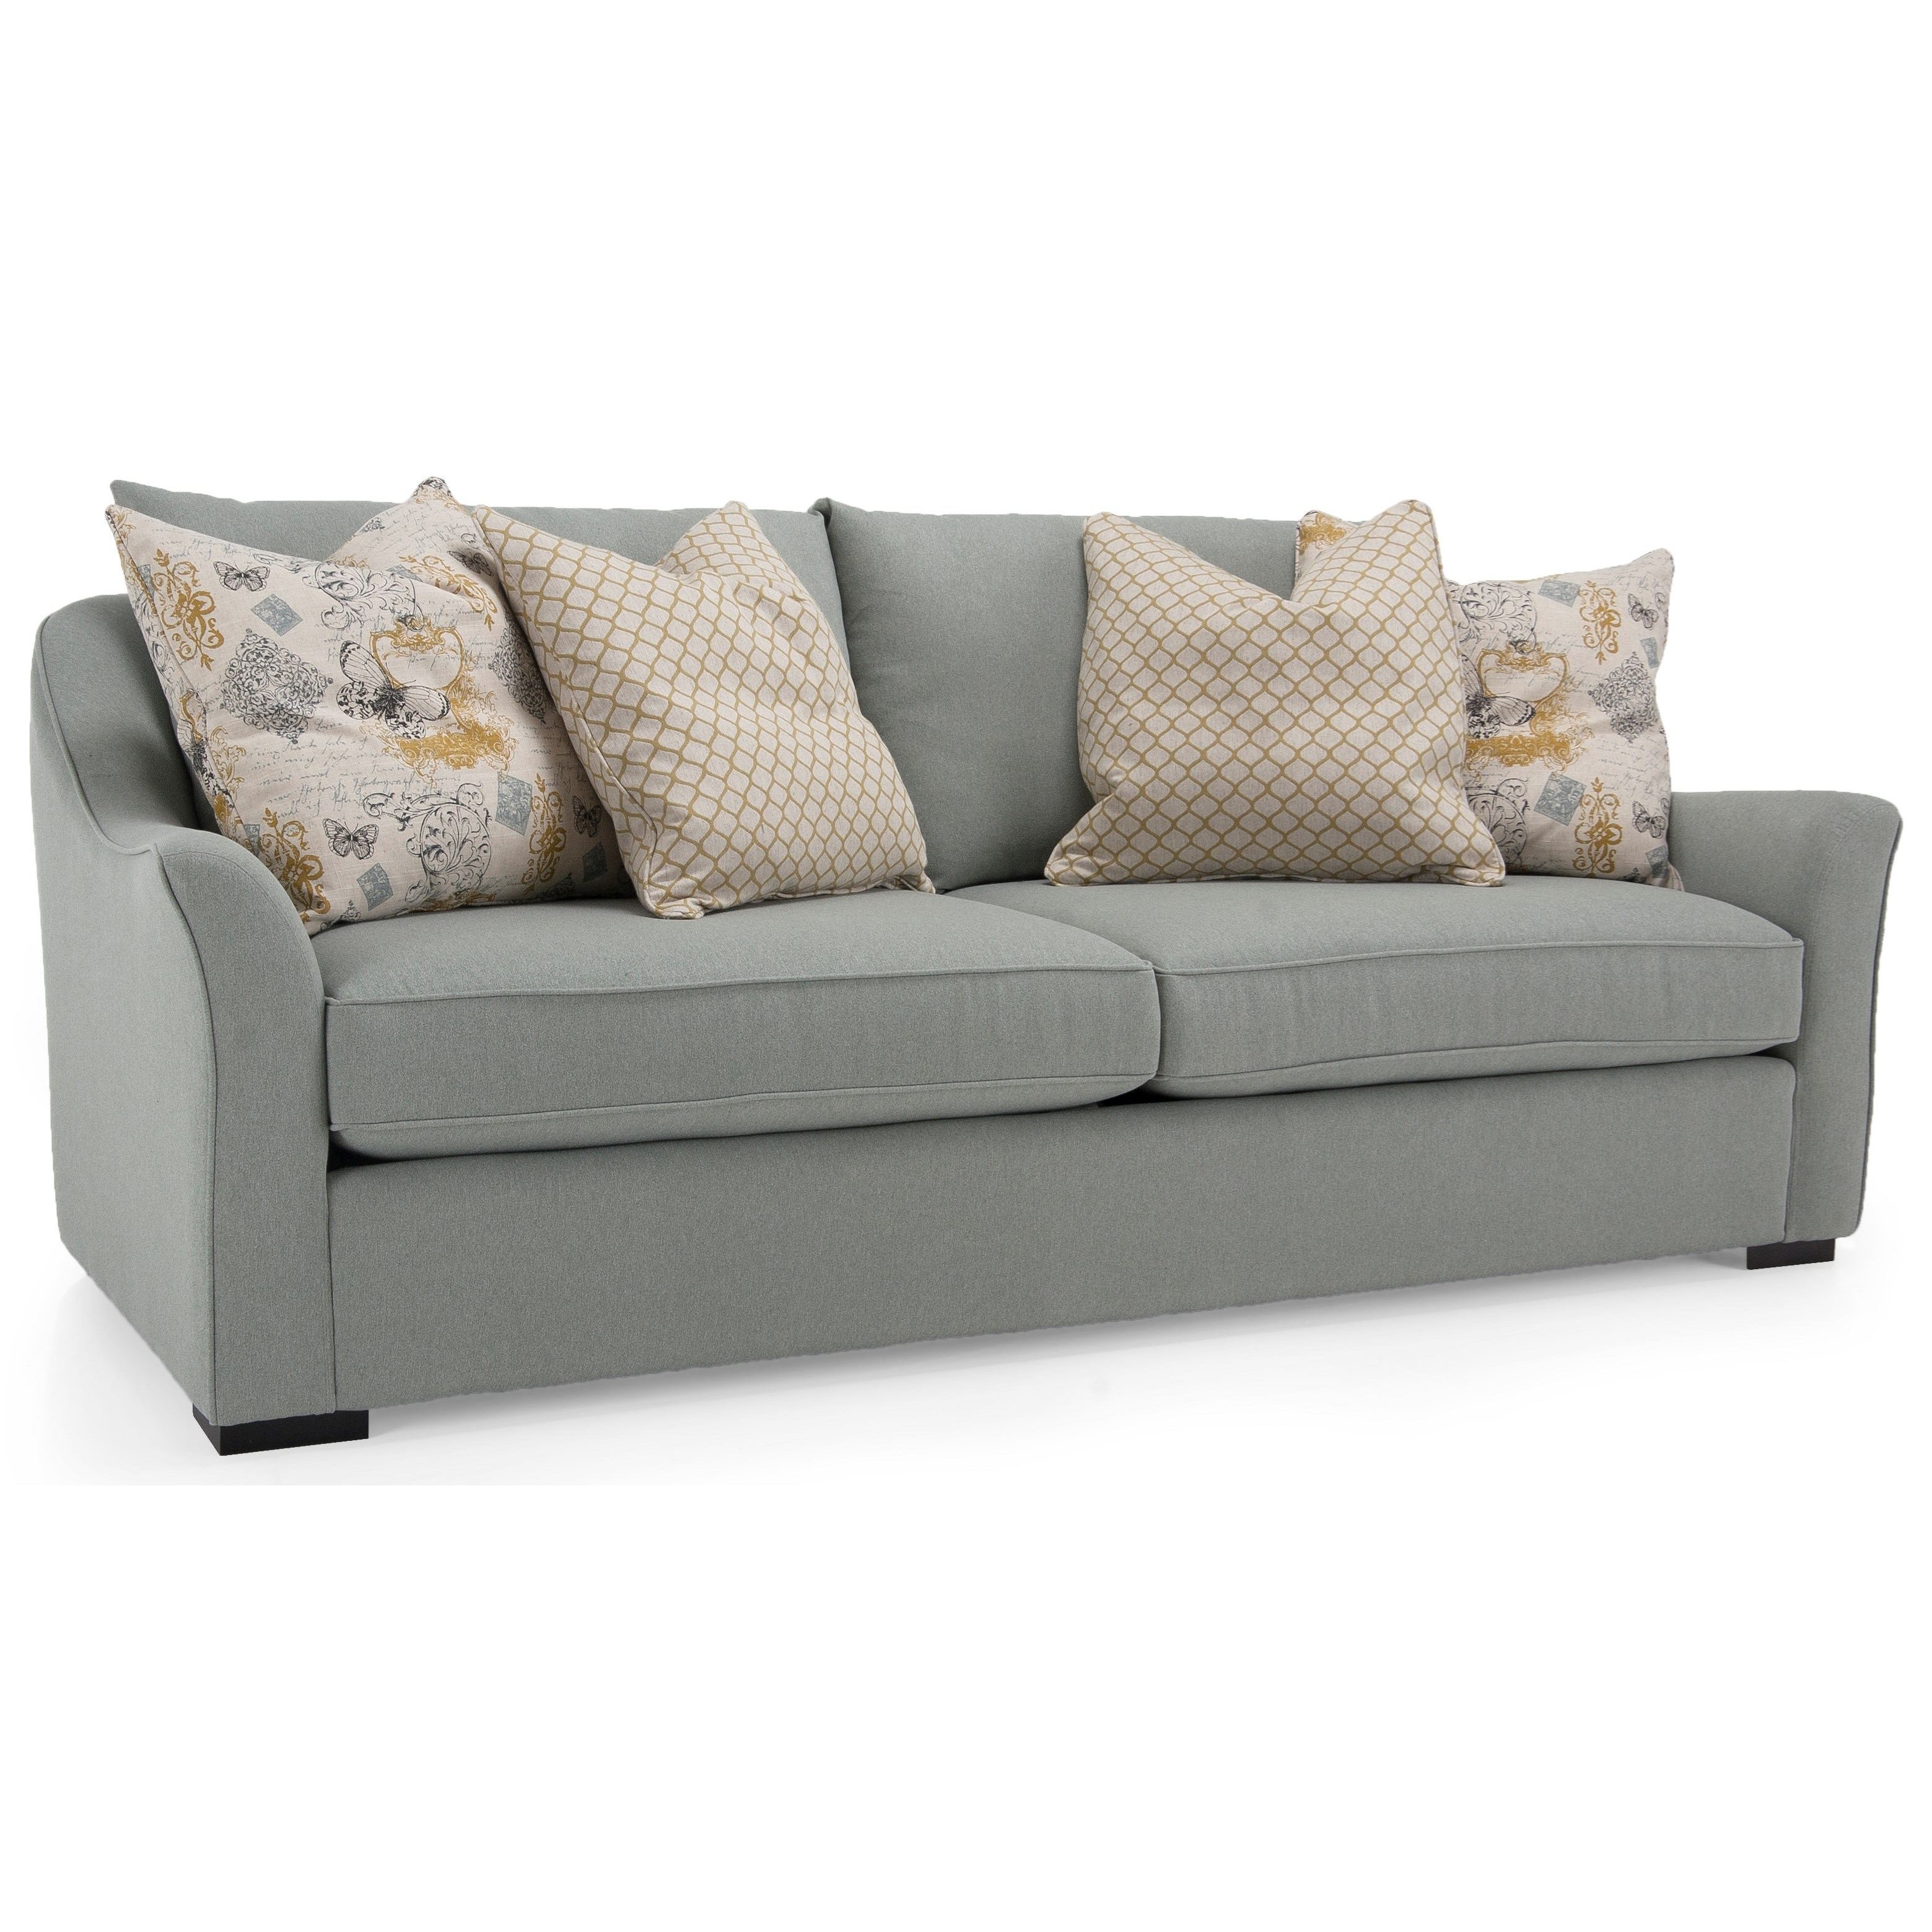 7112 Series Sofa by Decor-Rest at Johnny Janosik